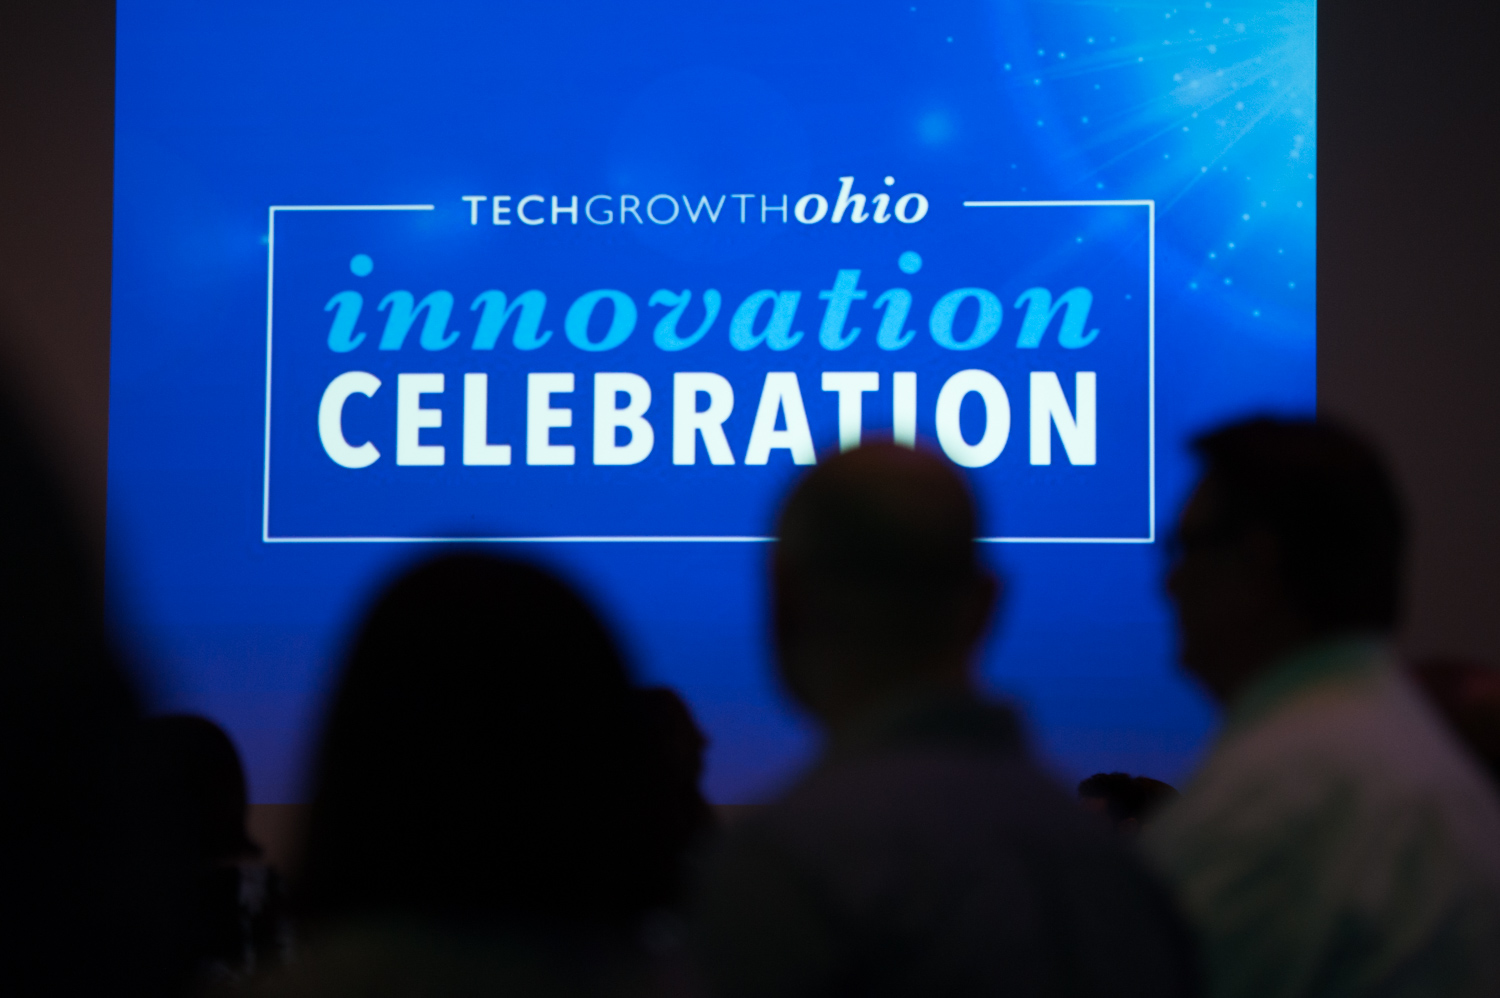 Event coverage for TechGROWTH Ohio's Innovation Celebration.